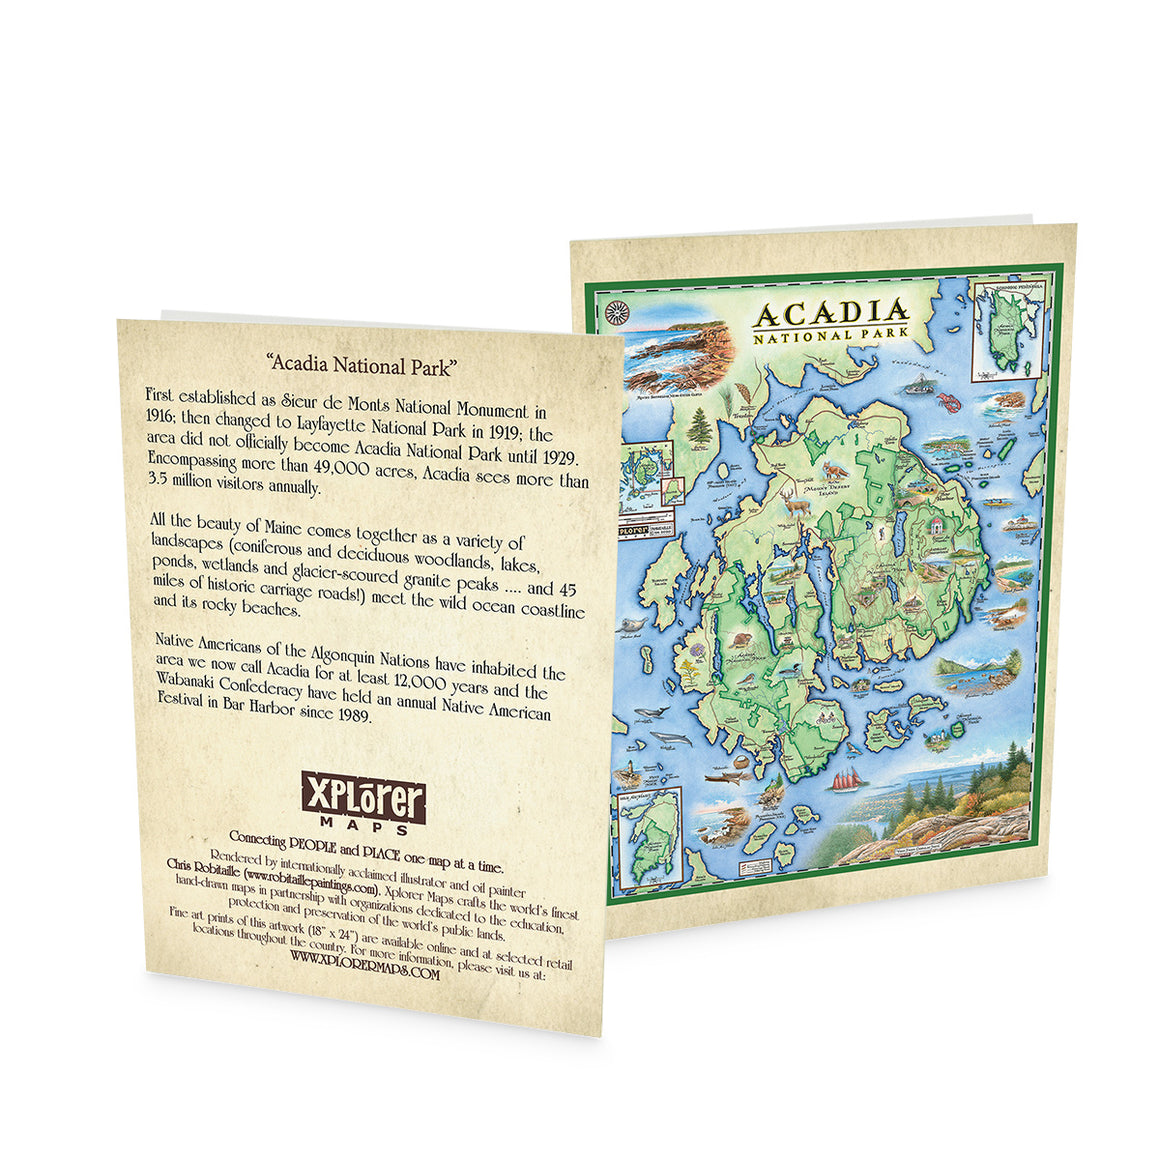 Acadia National Park Notecard 12 pack